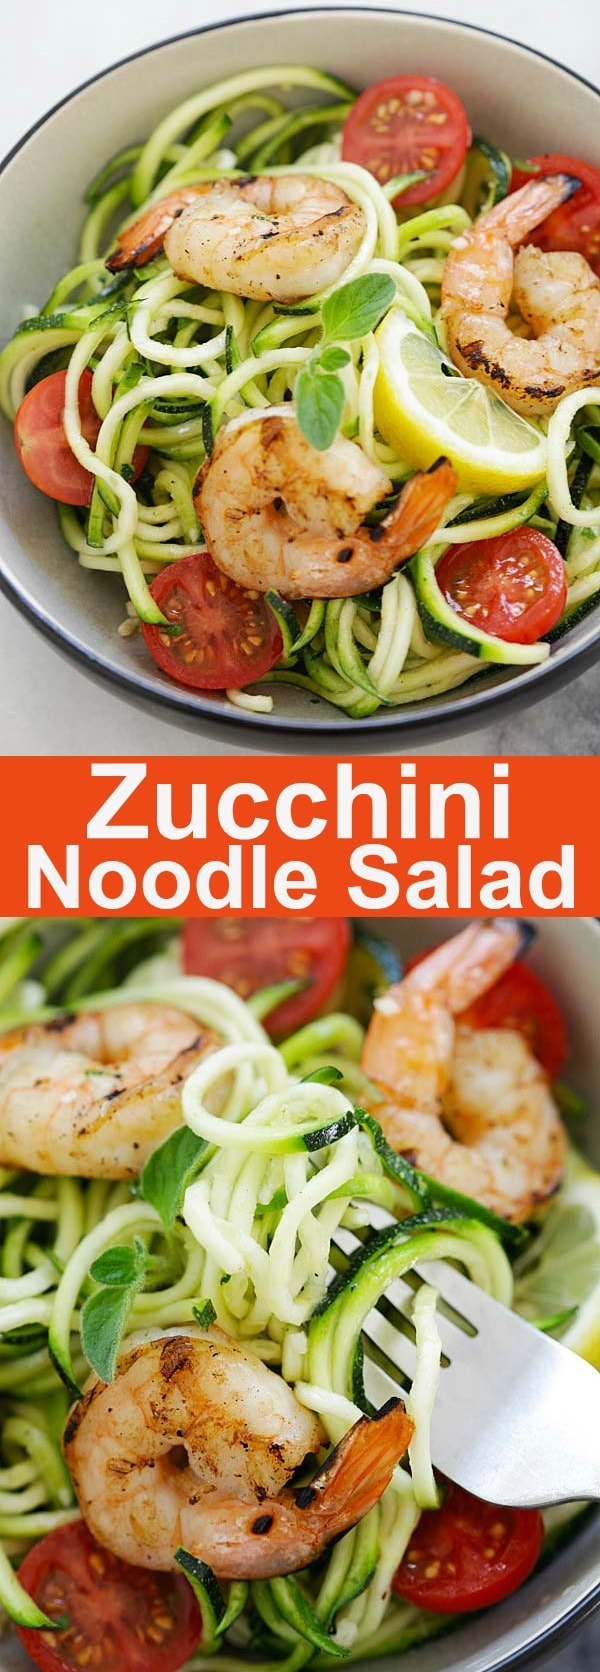 Zucchini Noodle Salad - healthy and refreshing salad made with zoodles or zucchini noodles. Topped with grilled shrimp and lemon-honey dressing, this salad is so delicious | rasamalaysia.com